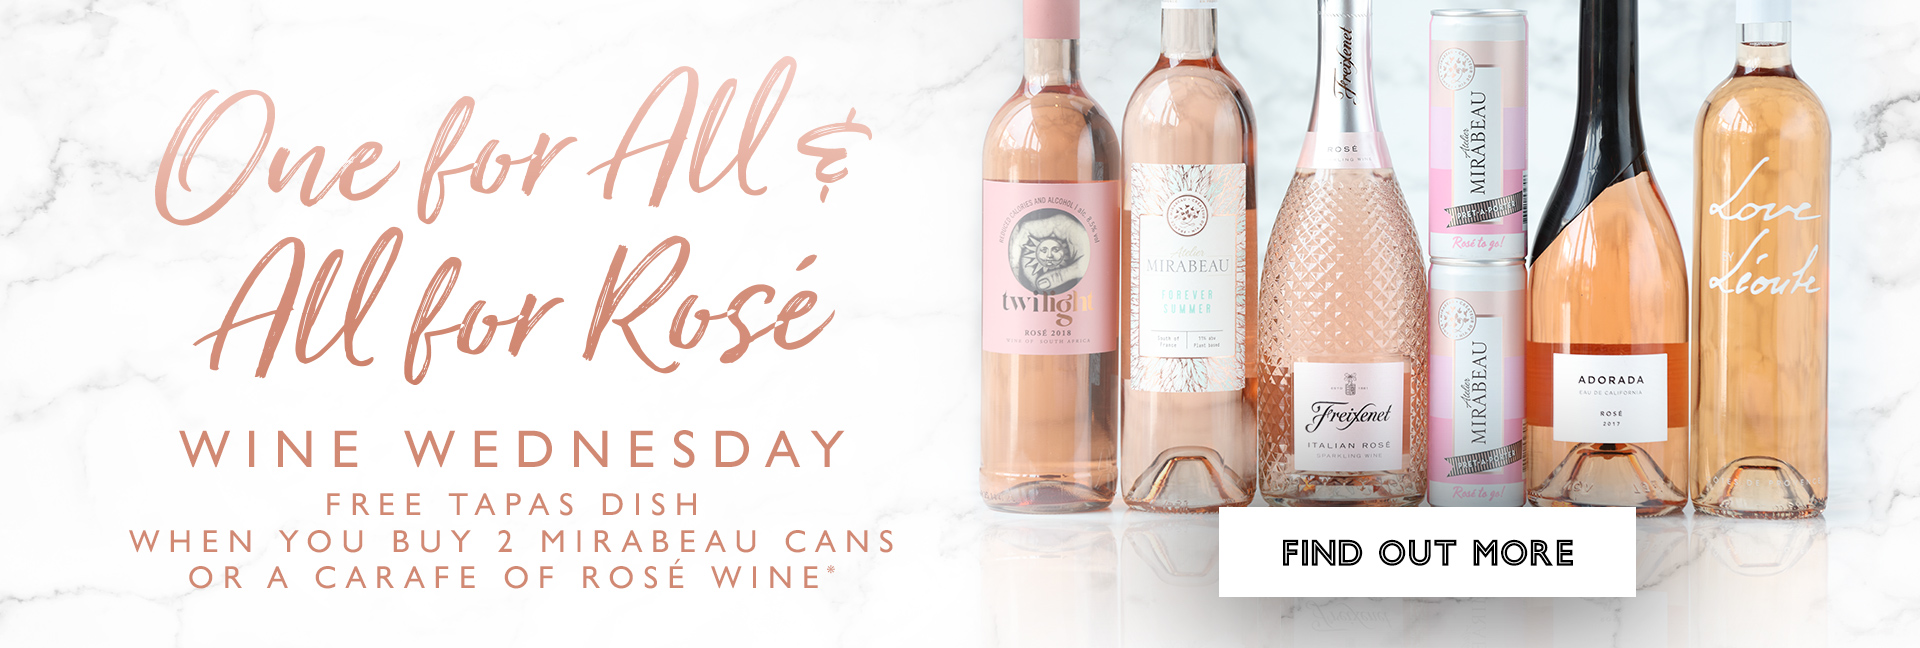 Wine Wednesdays at All Bar One St Pauls